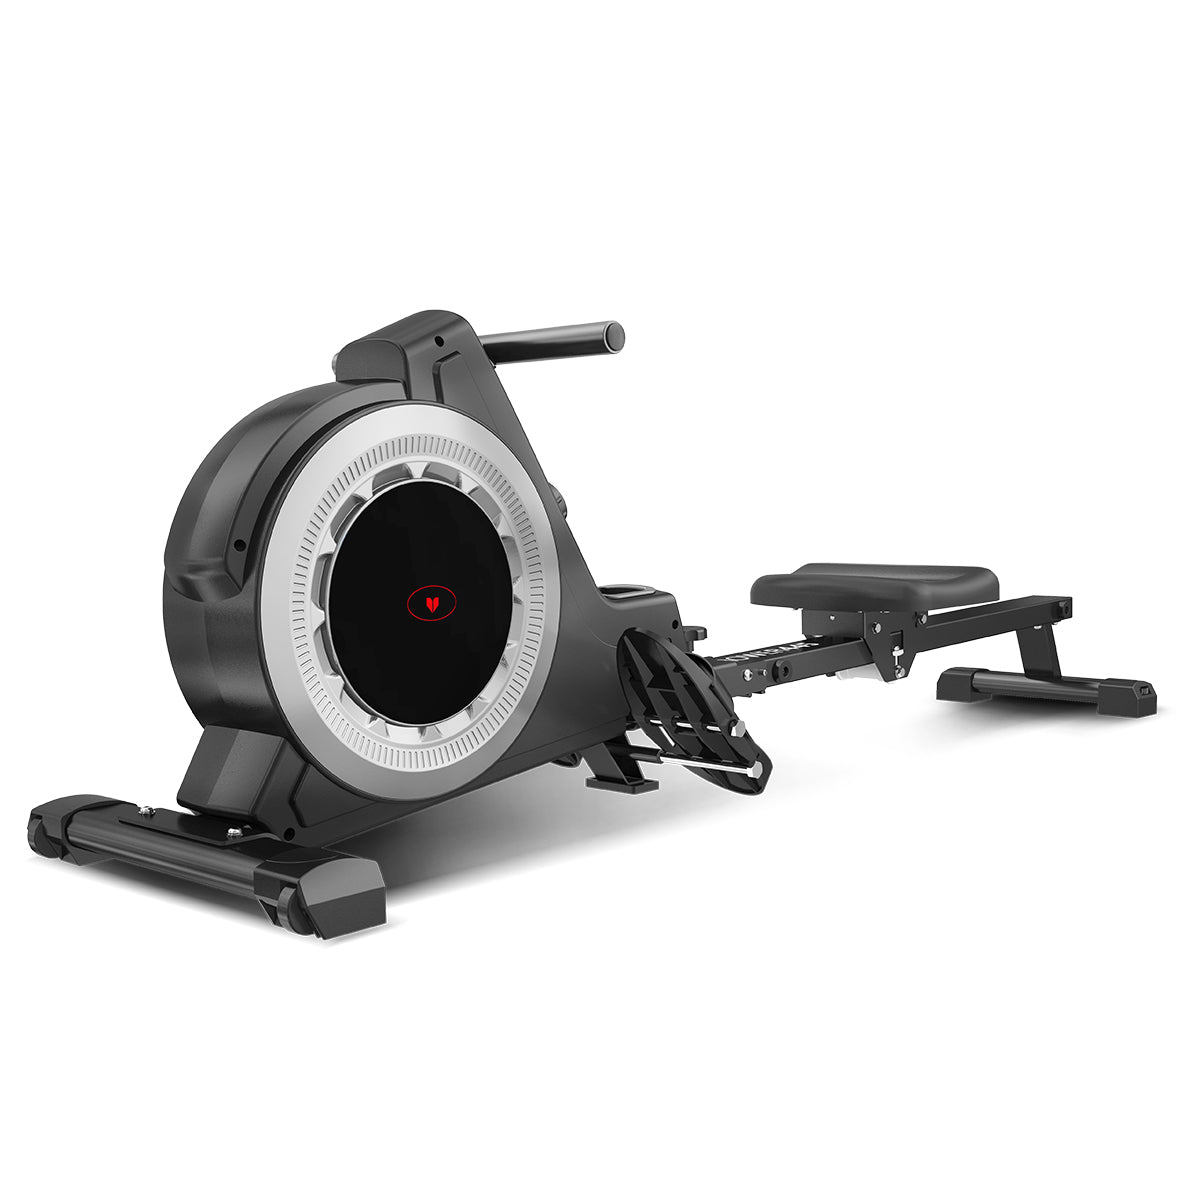 ROWER-445 Magnetic Rowing Machine | Lifespan Fitness